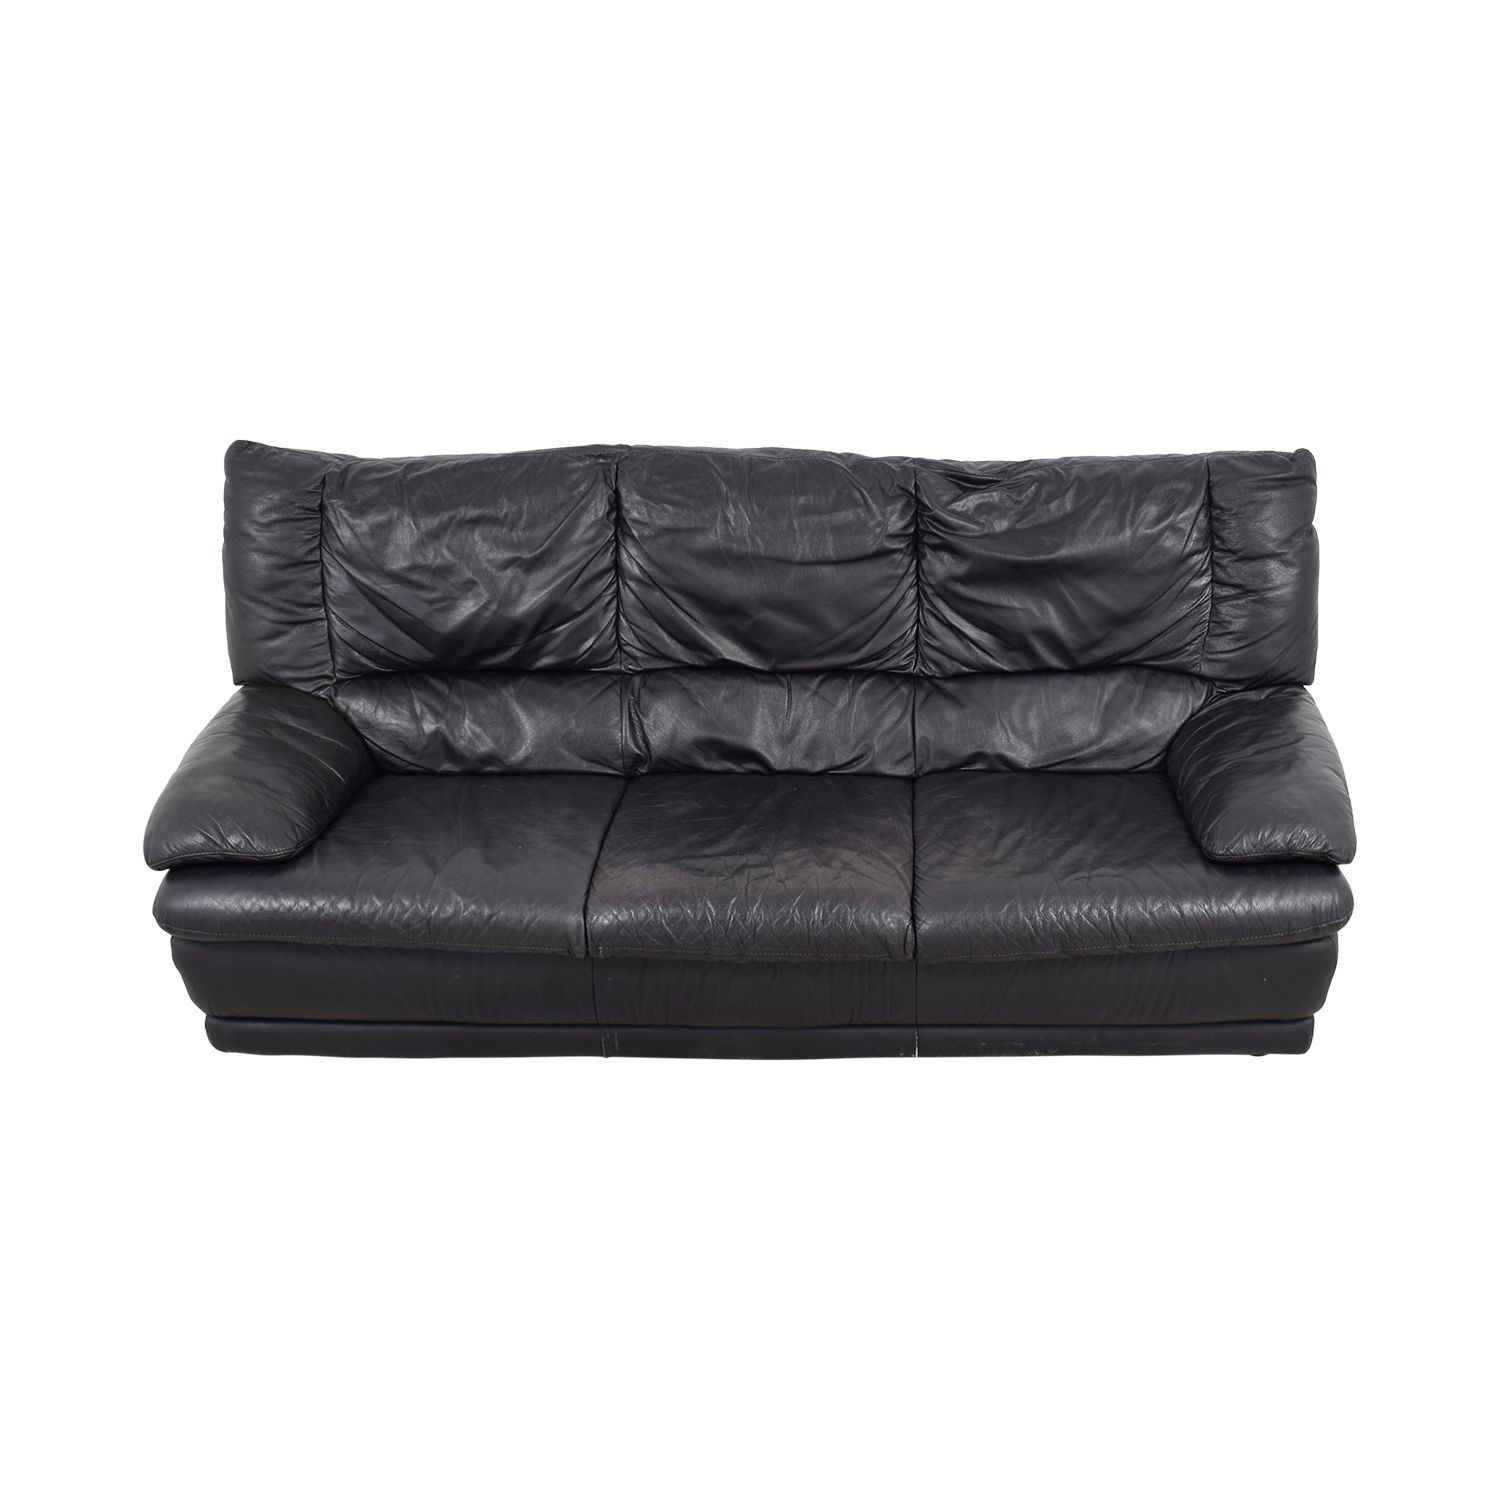 Ikea Black Leather Sofa Black Leather Sofas Leather Sofa Ikea Sofa